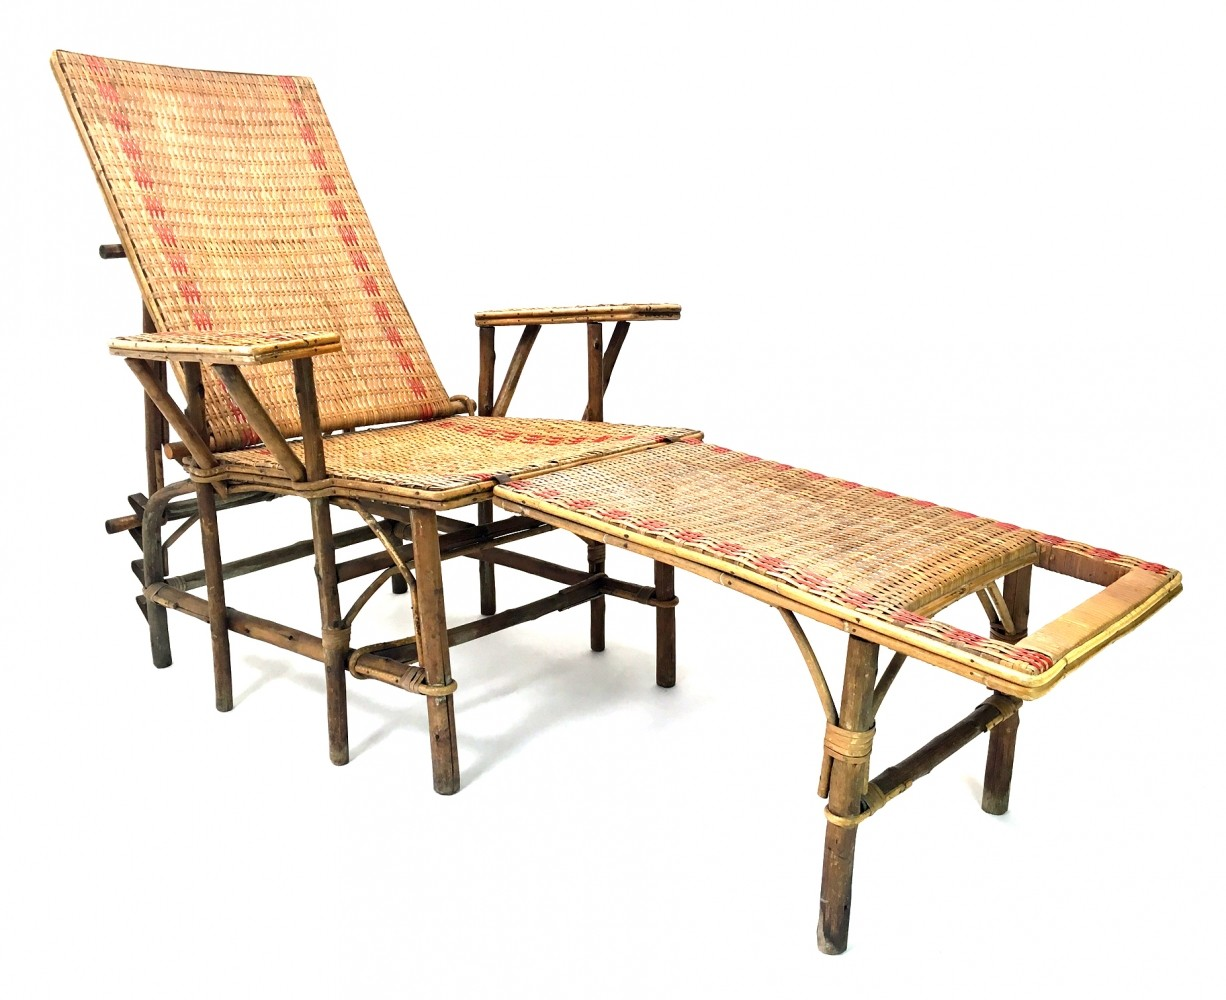 French wicker bamboo chaise longue with footrest 1920s for Chaise en osier